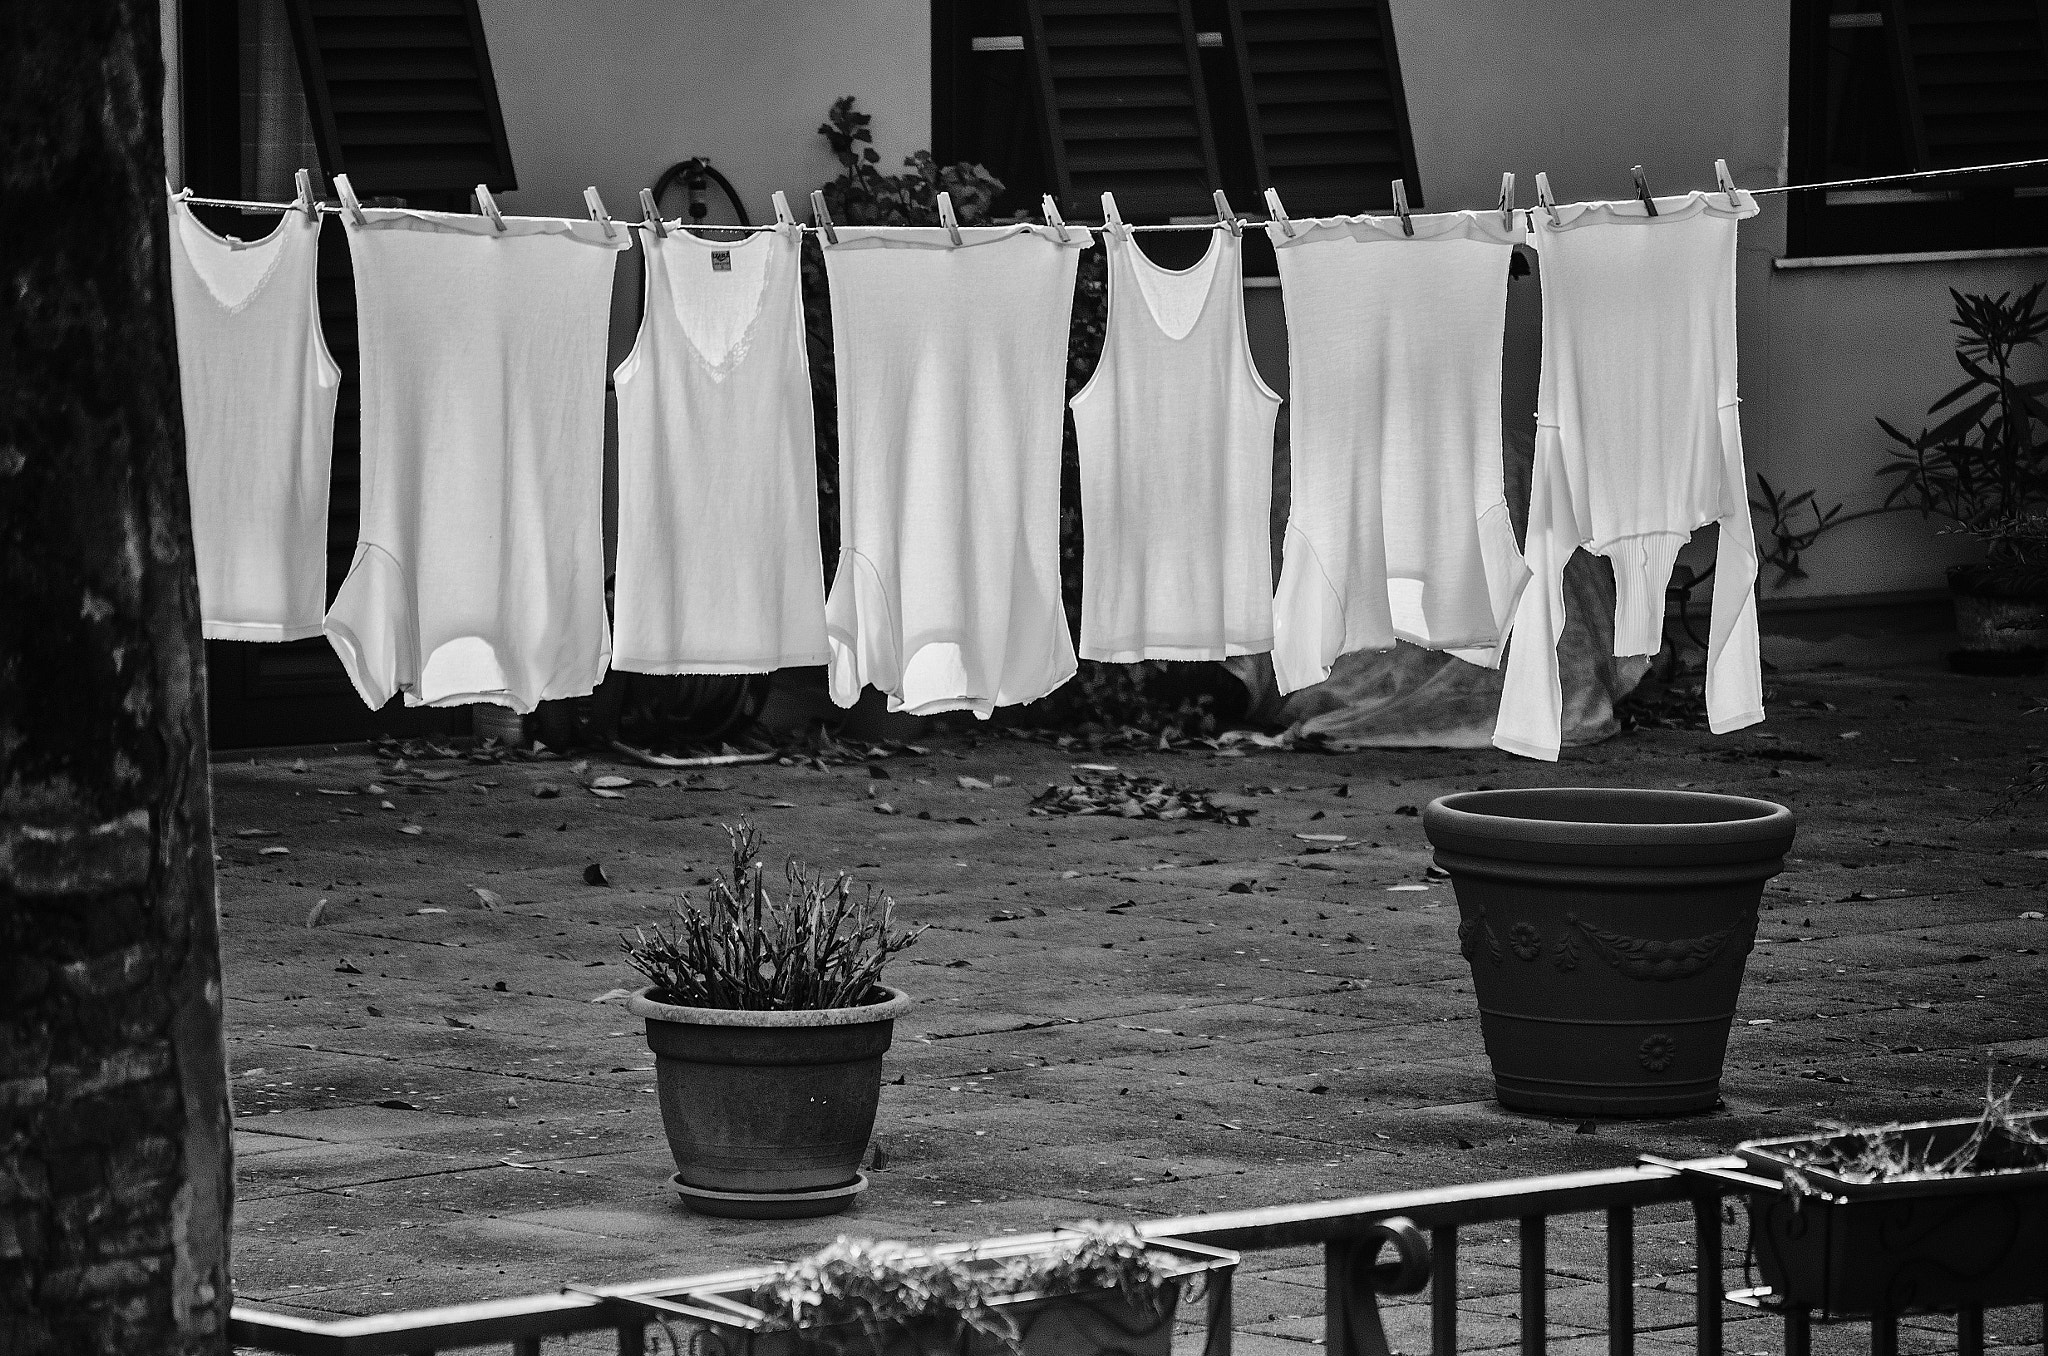 Photograph The laundry by ilaria massarelli on 500px